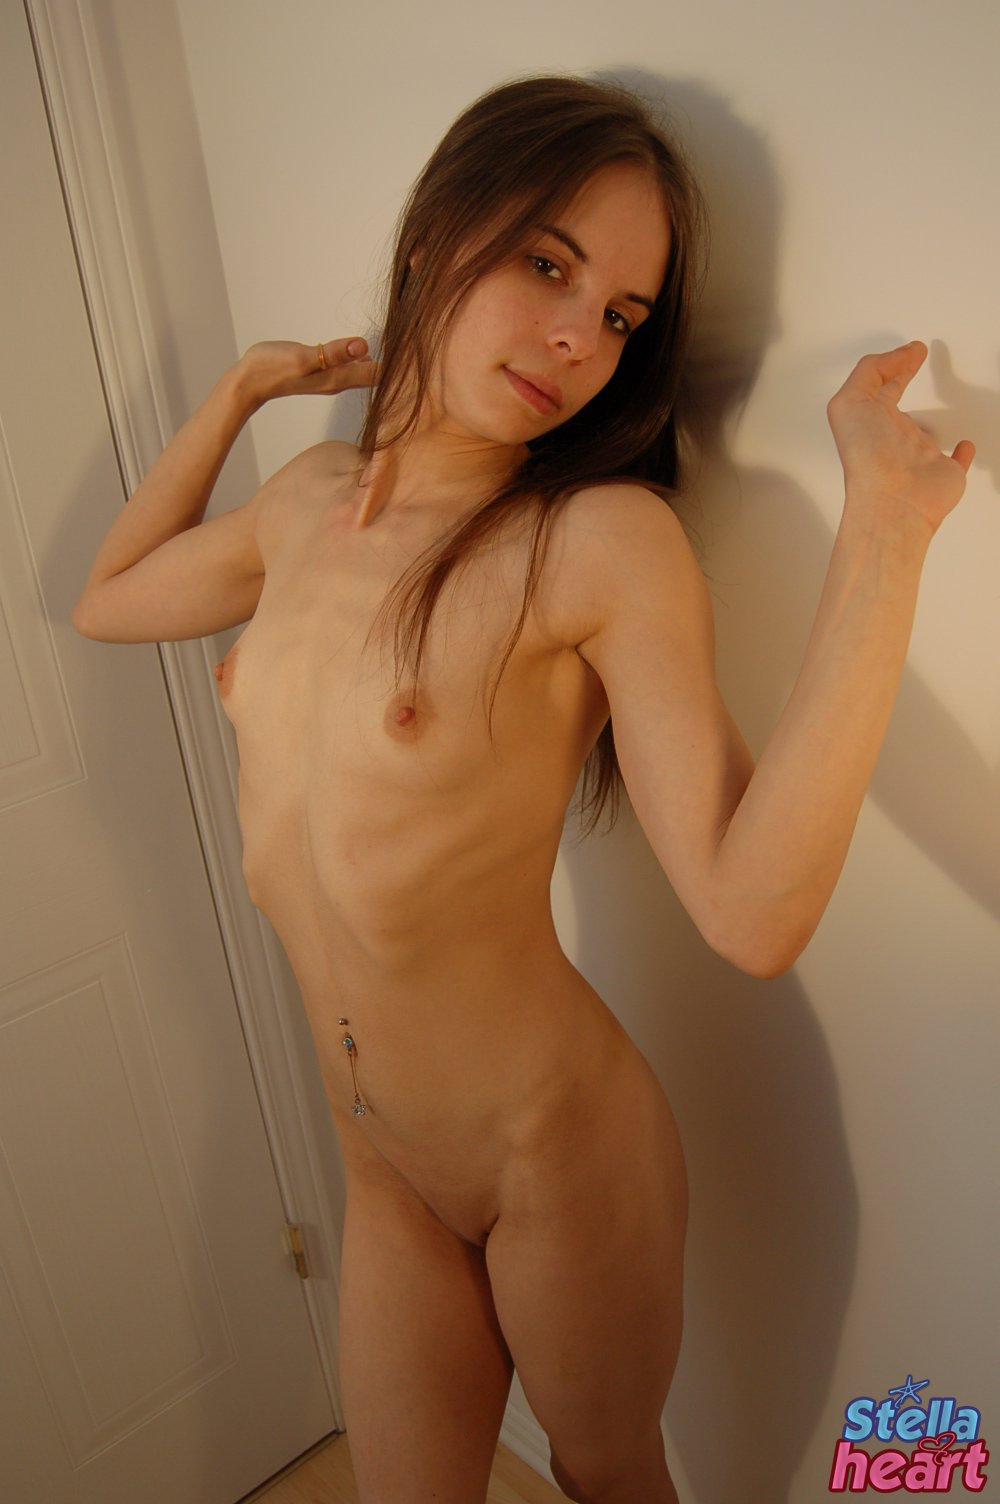 Stella heart nude model